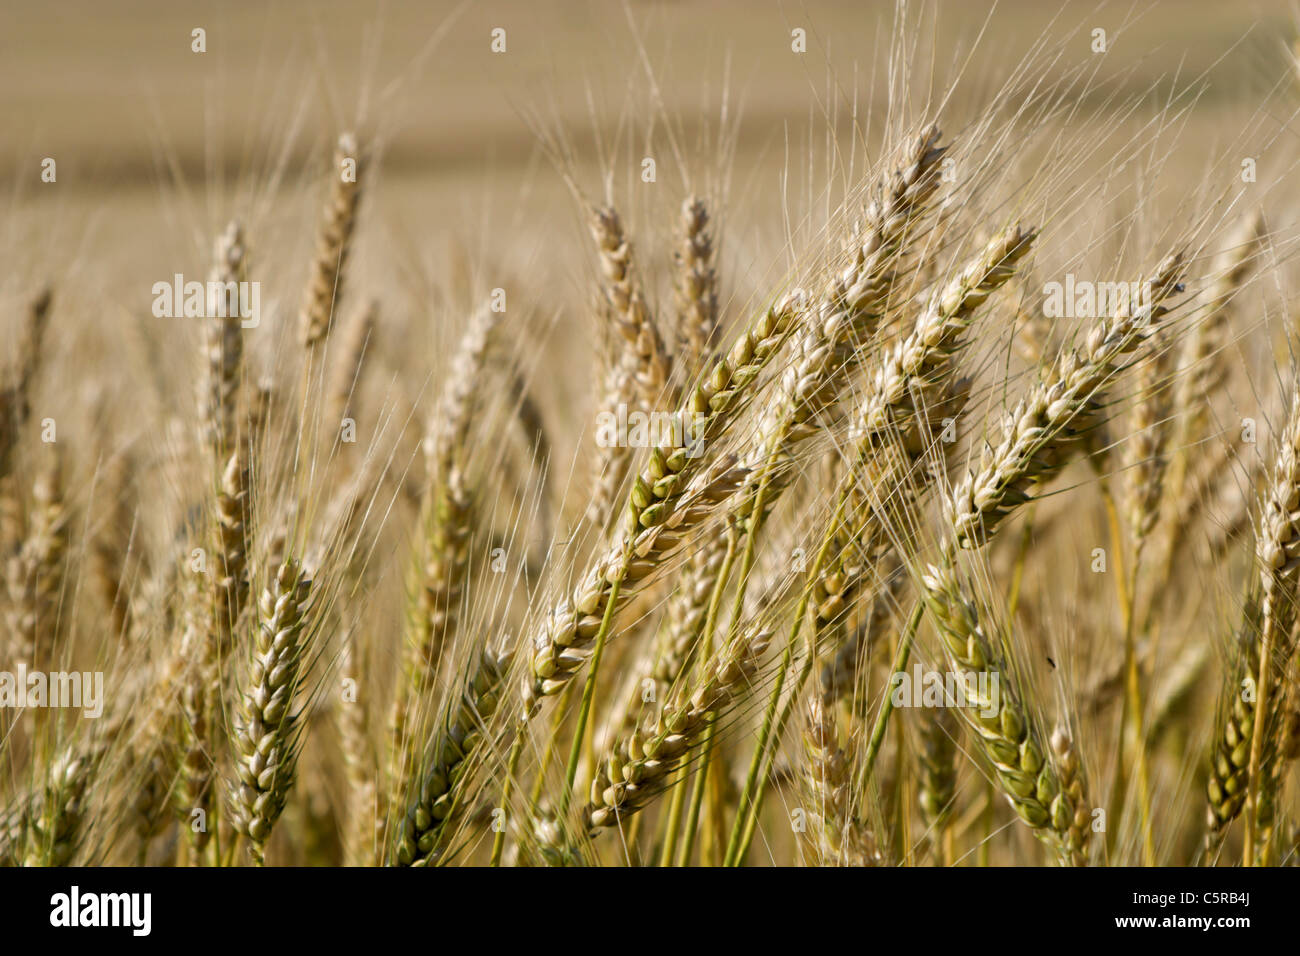 detail of crops for the harvest - Stock Image